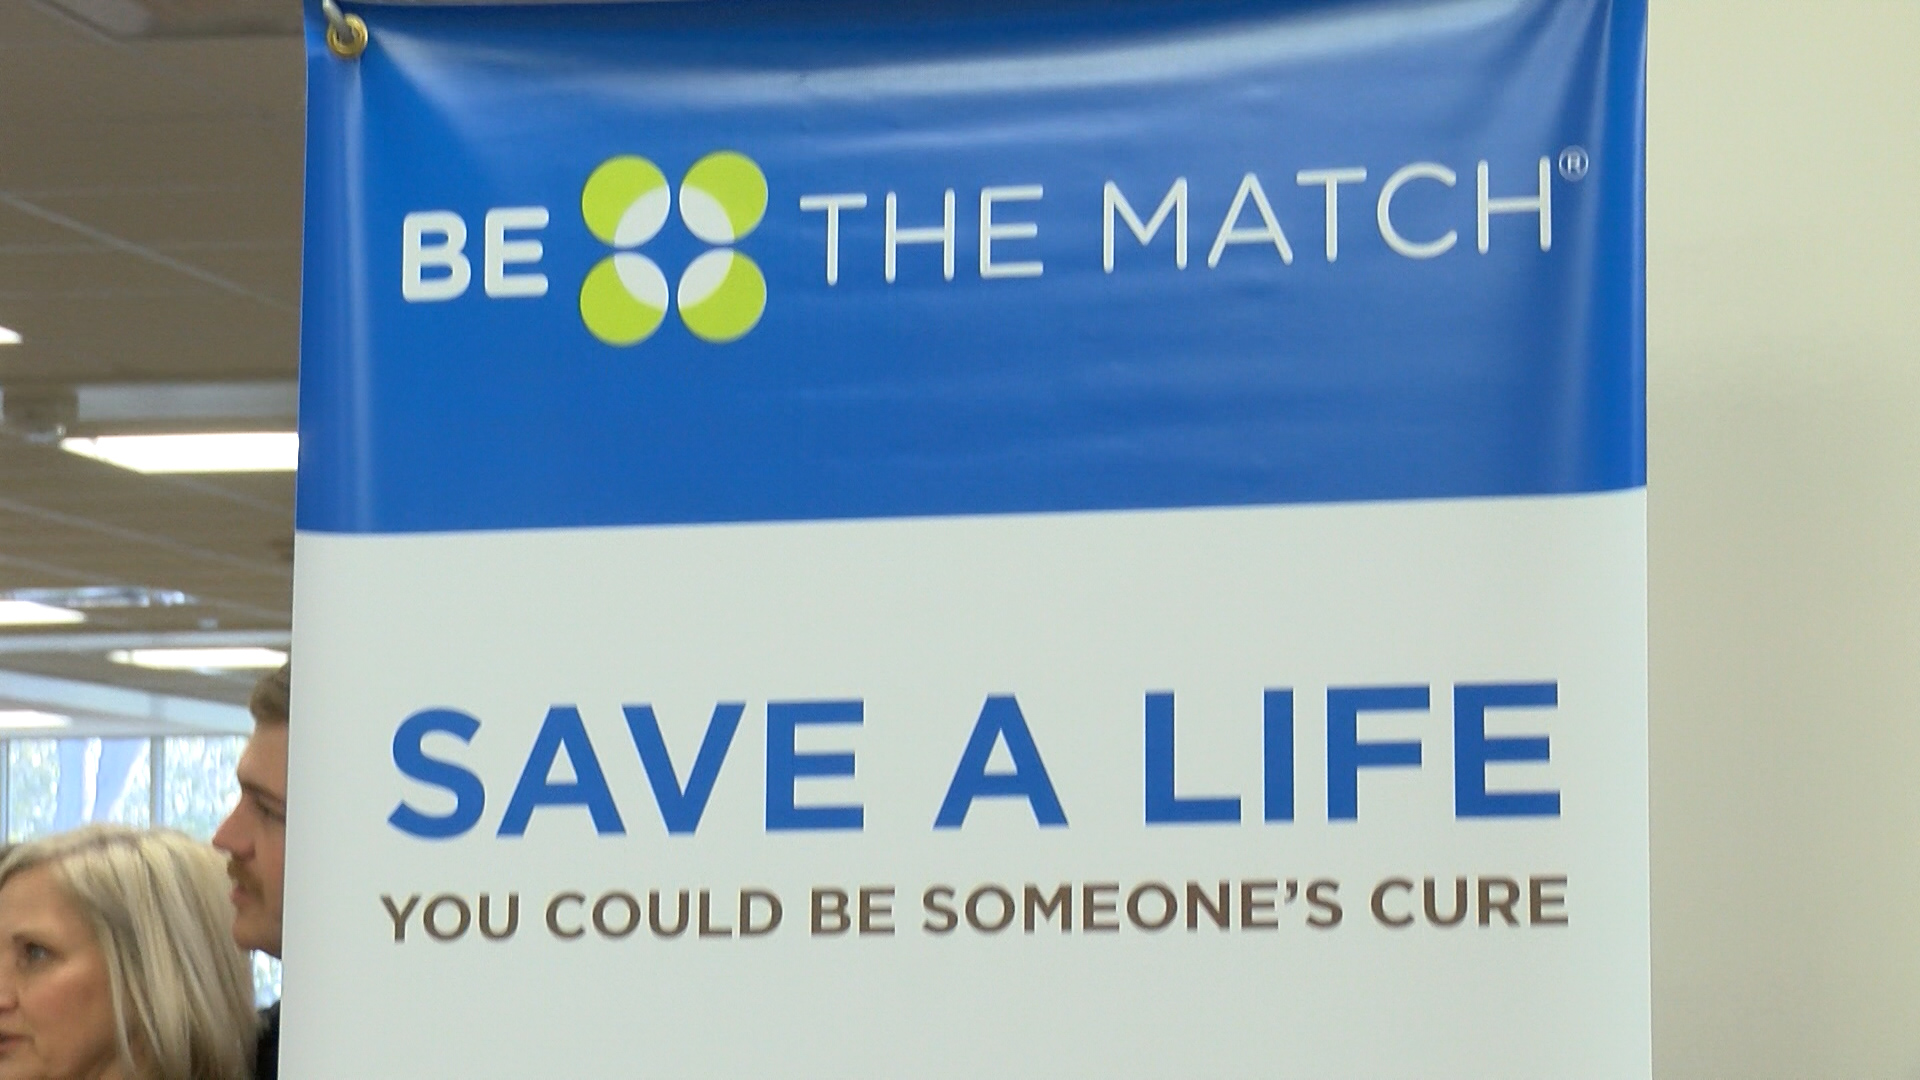 be the match_1543342832705.jpg.jpg